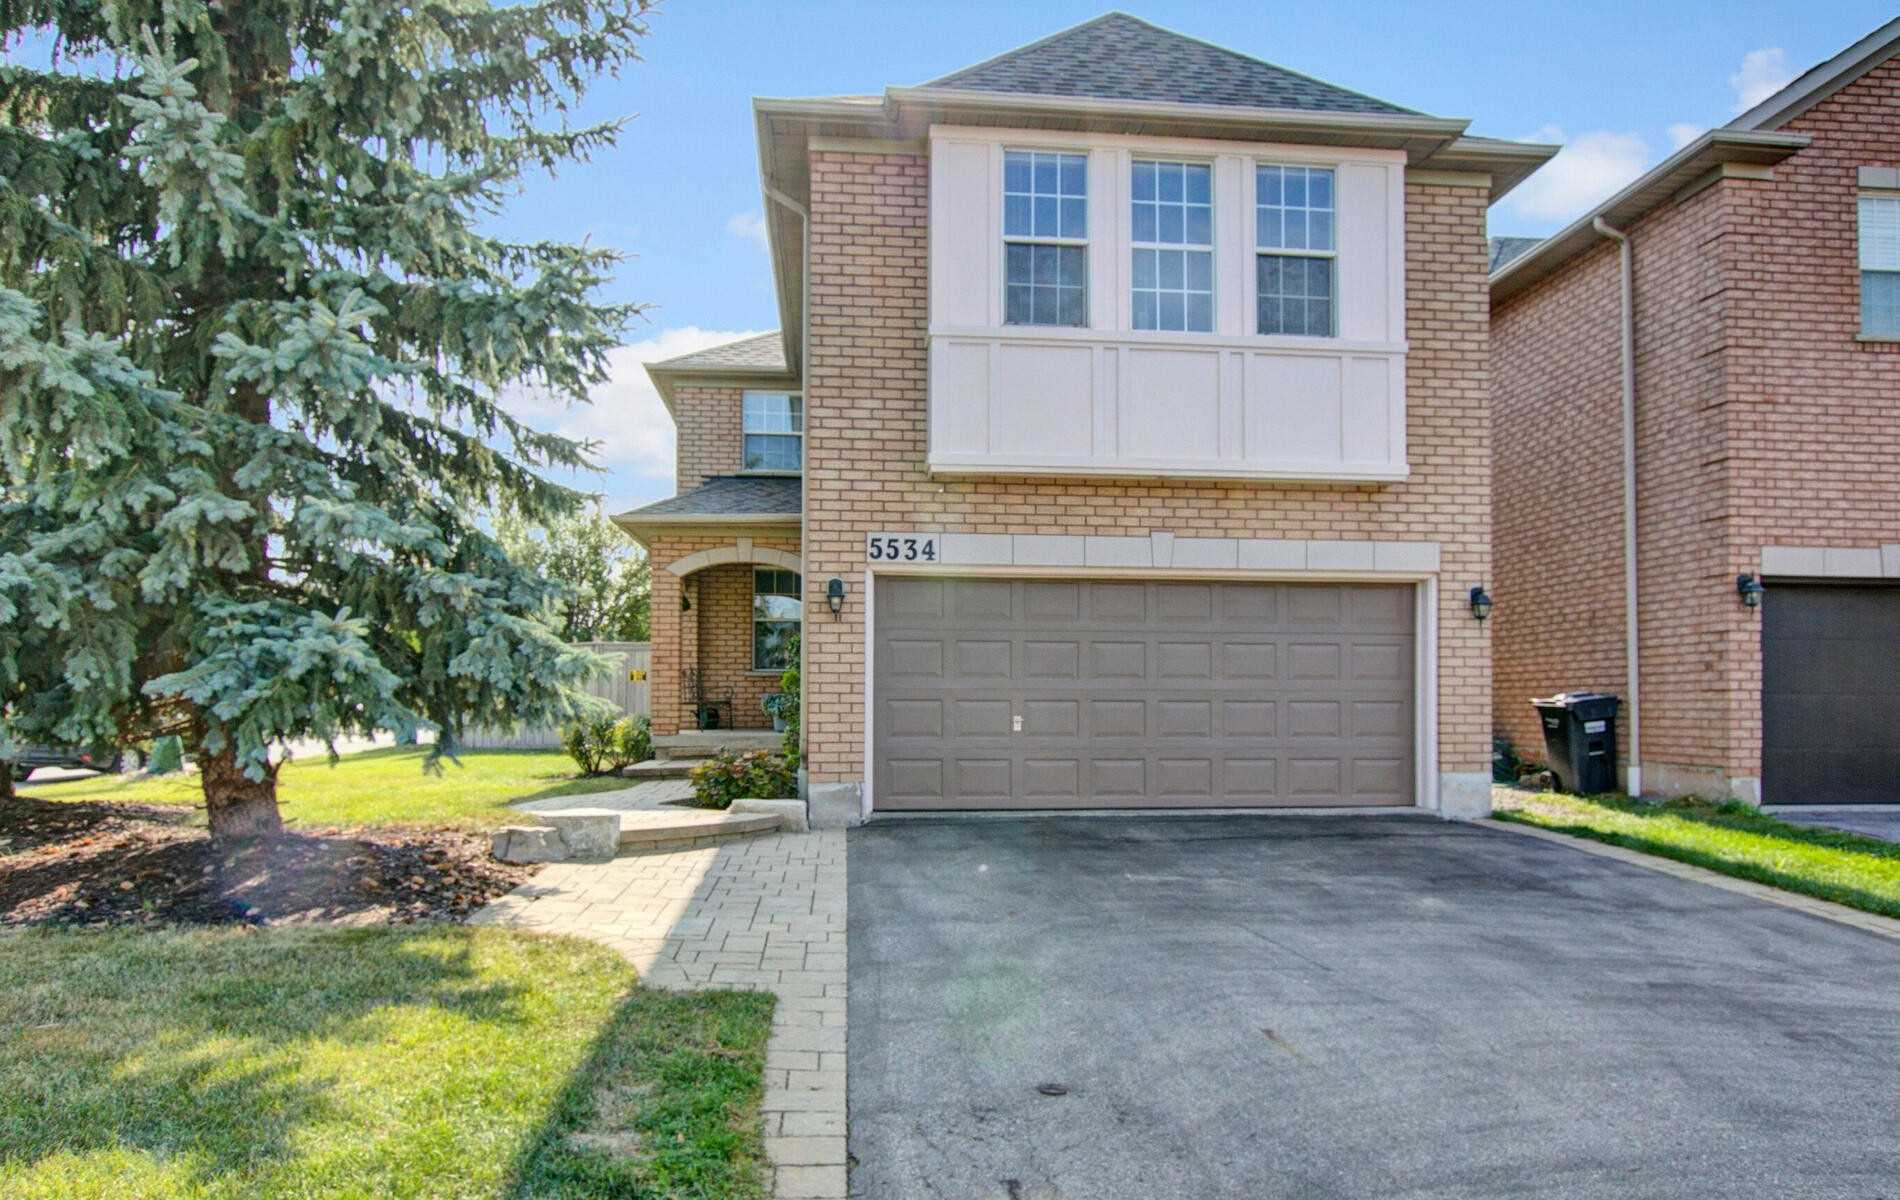 5534 Highbank Rd, Mississauga, Ontario L5M6E5, 3 Bedrooms Bedrooms, 9 Rooms Rooms,3 BathroomsBathrooms,Detached,For Sale,Highbank,W4928026